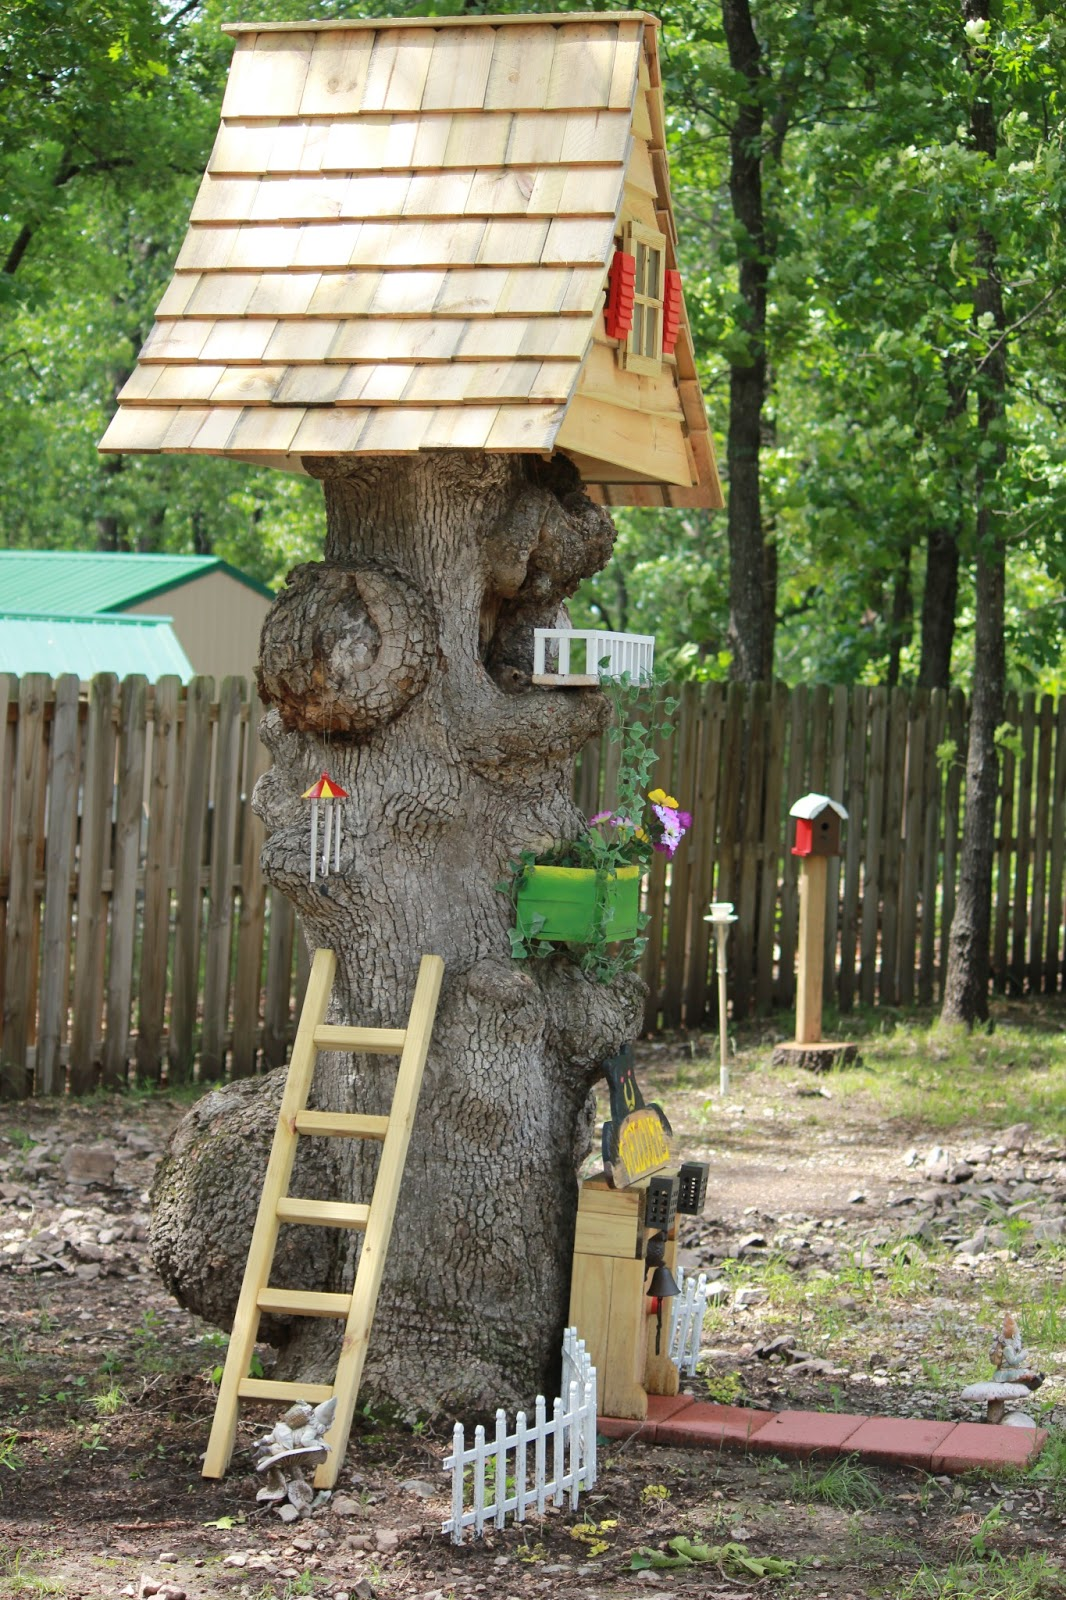 Tree stump house - Repurposed Tree Stump Into A Beautiful Gnome Home